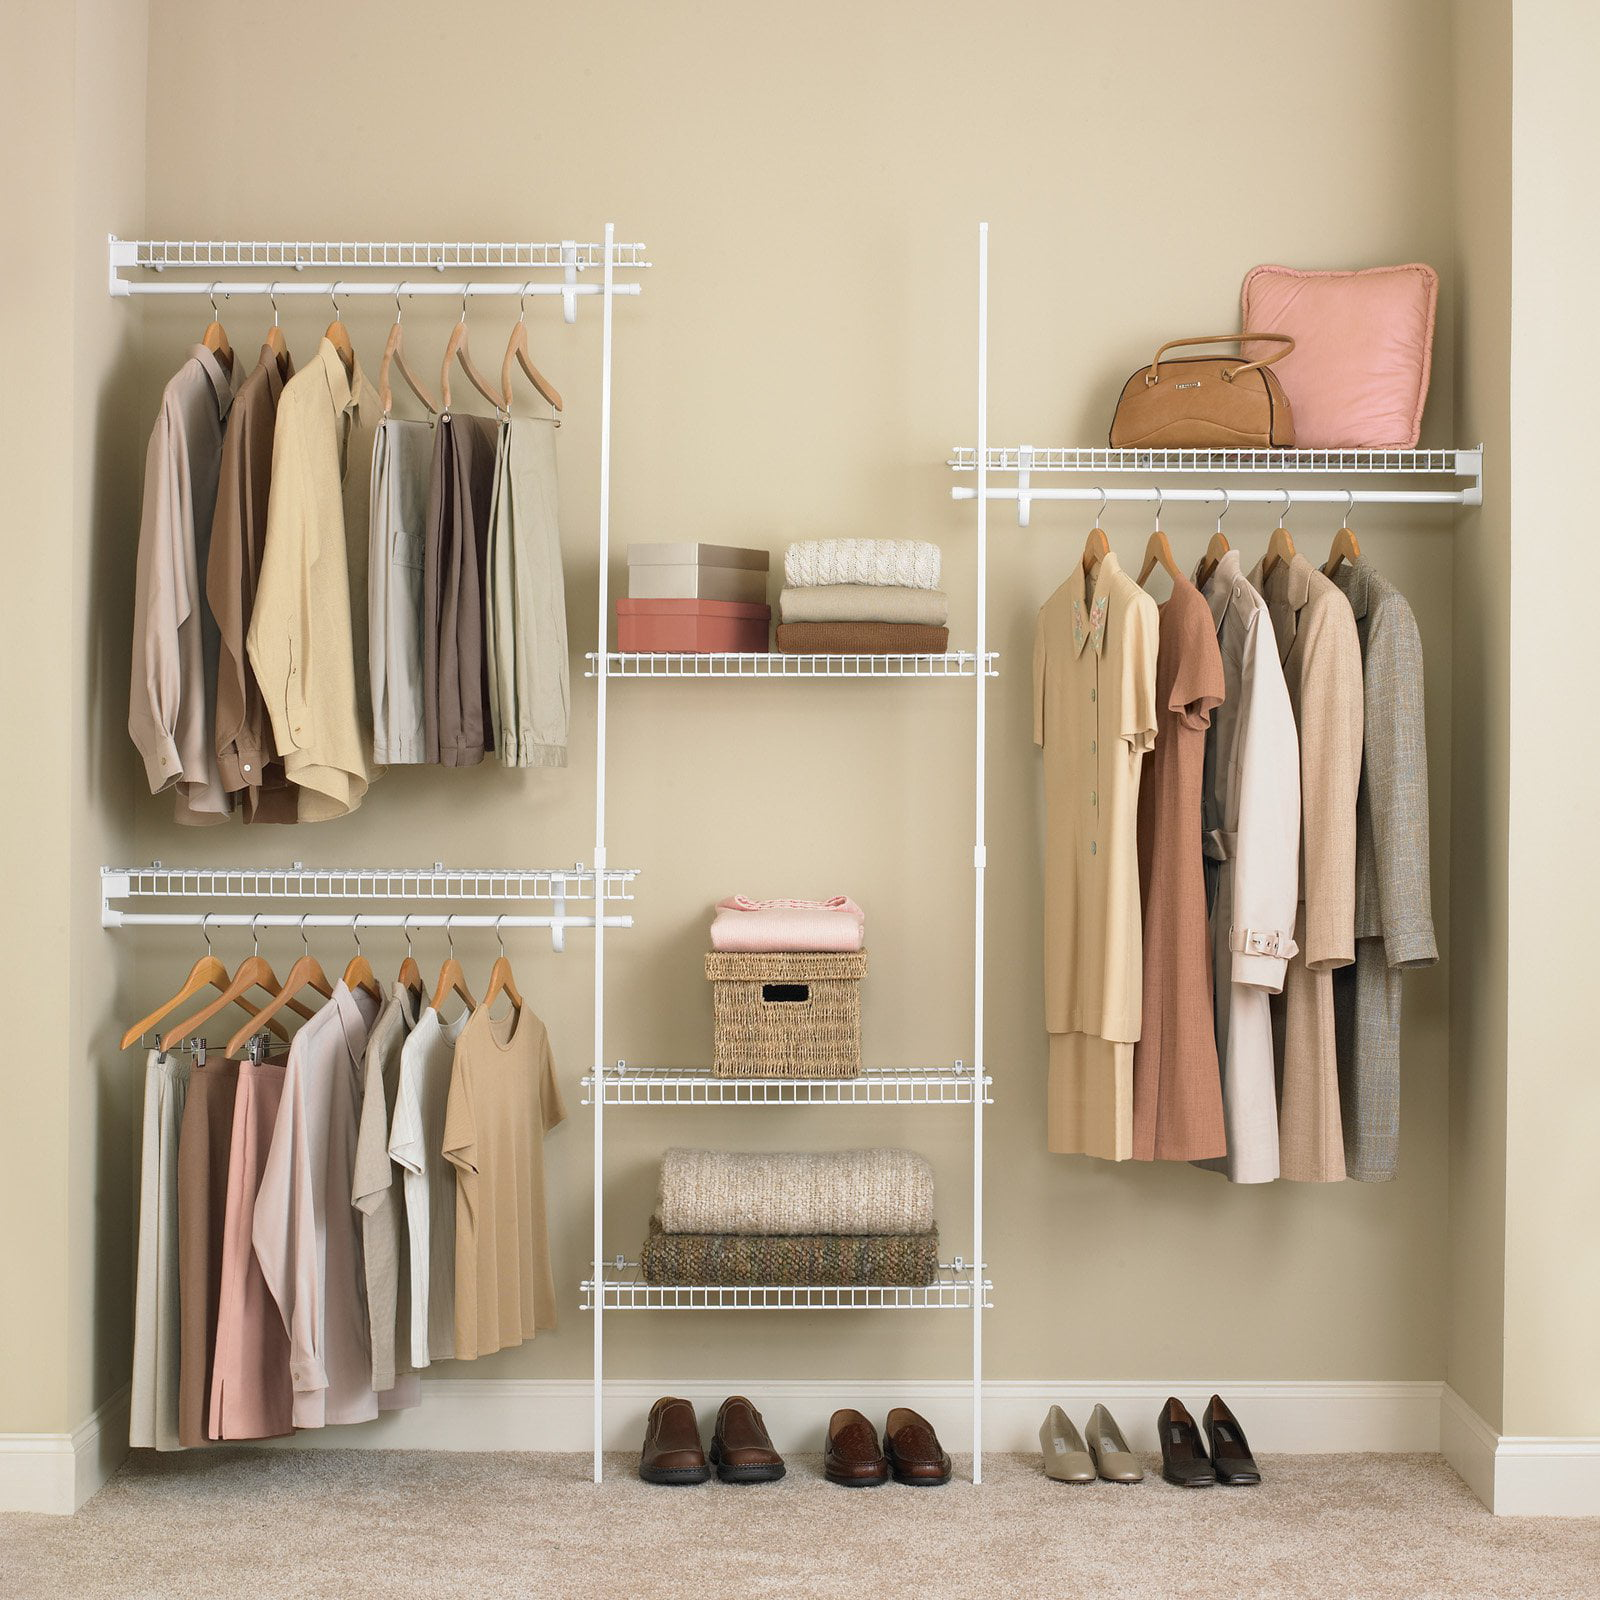 Attractive ClosetMaid SuperSlide 5 8 Ft. Closet Organizer Kit   Walmart.com